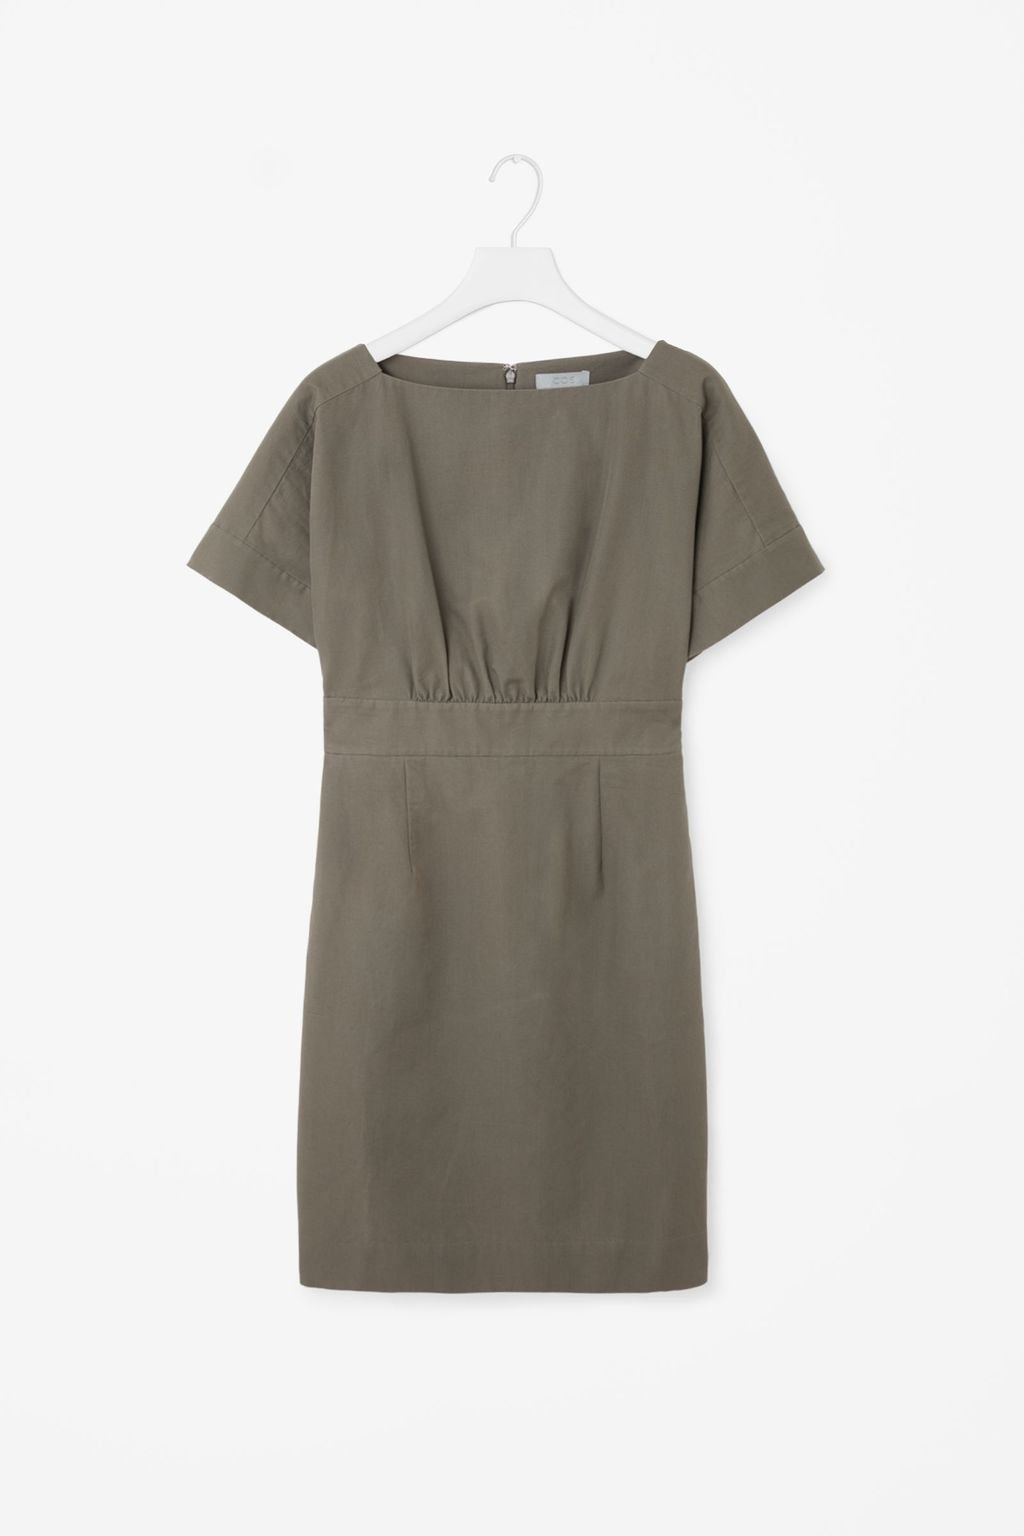 Wide Neck Dress - style: shift; length: mid thigh; fit: tailored/fitted; pattern: plain; predominant colour: khaki; occasions: casual; fibres: cotton - mix; neckline: crew; sleeve length: short sleeve; sleeve style: standard; pattern type: fabric; texture group: other - light to midweight; season: s/s 2016; wardrobe: basic